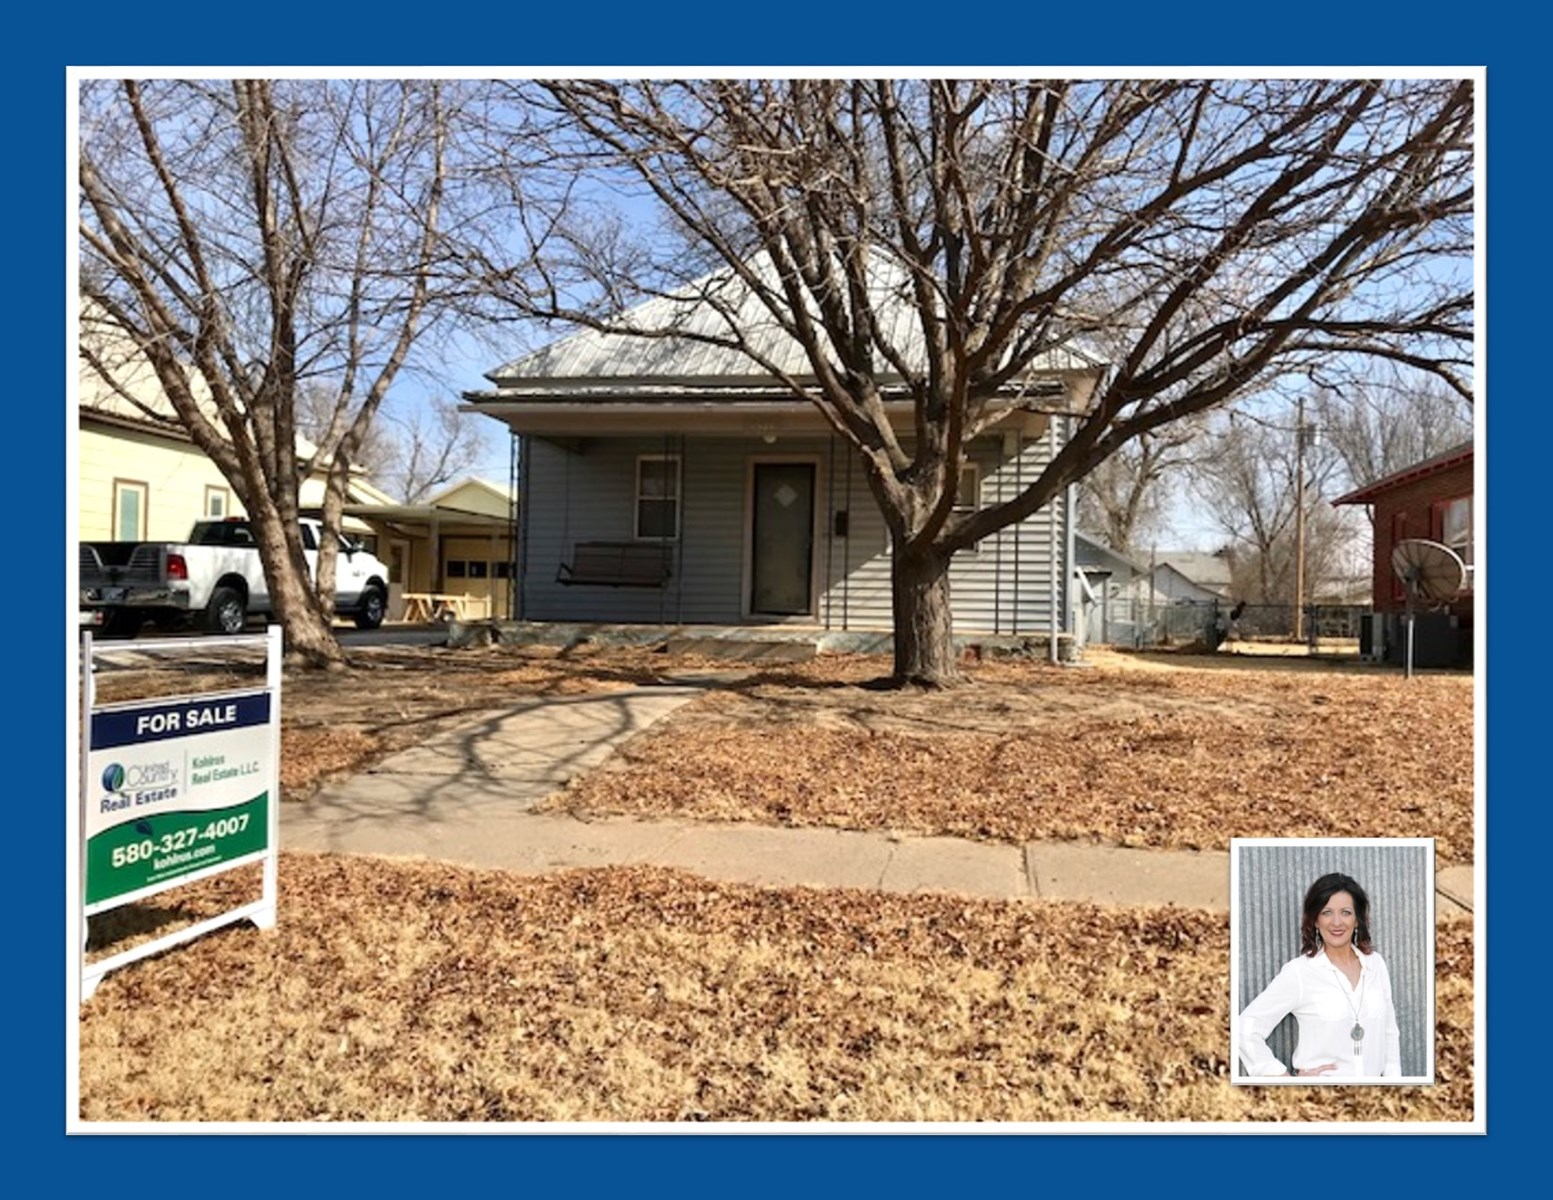 Homes for Sale Waynoka, OK